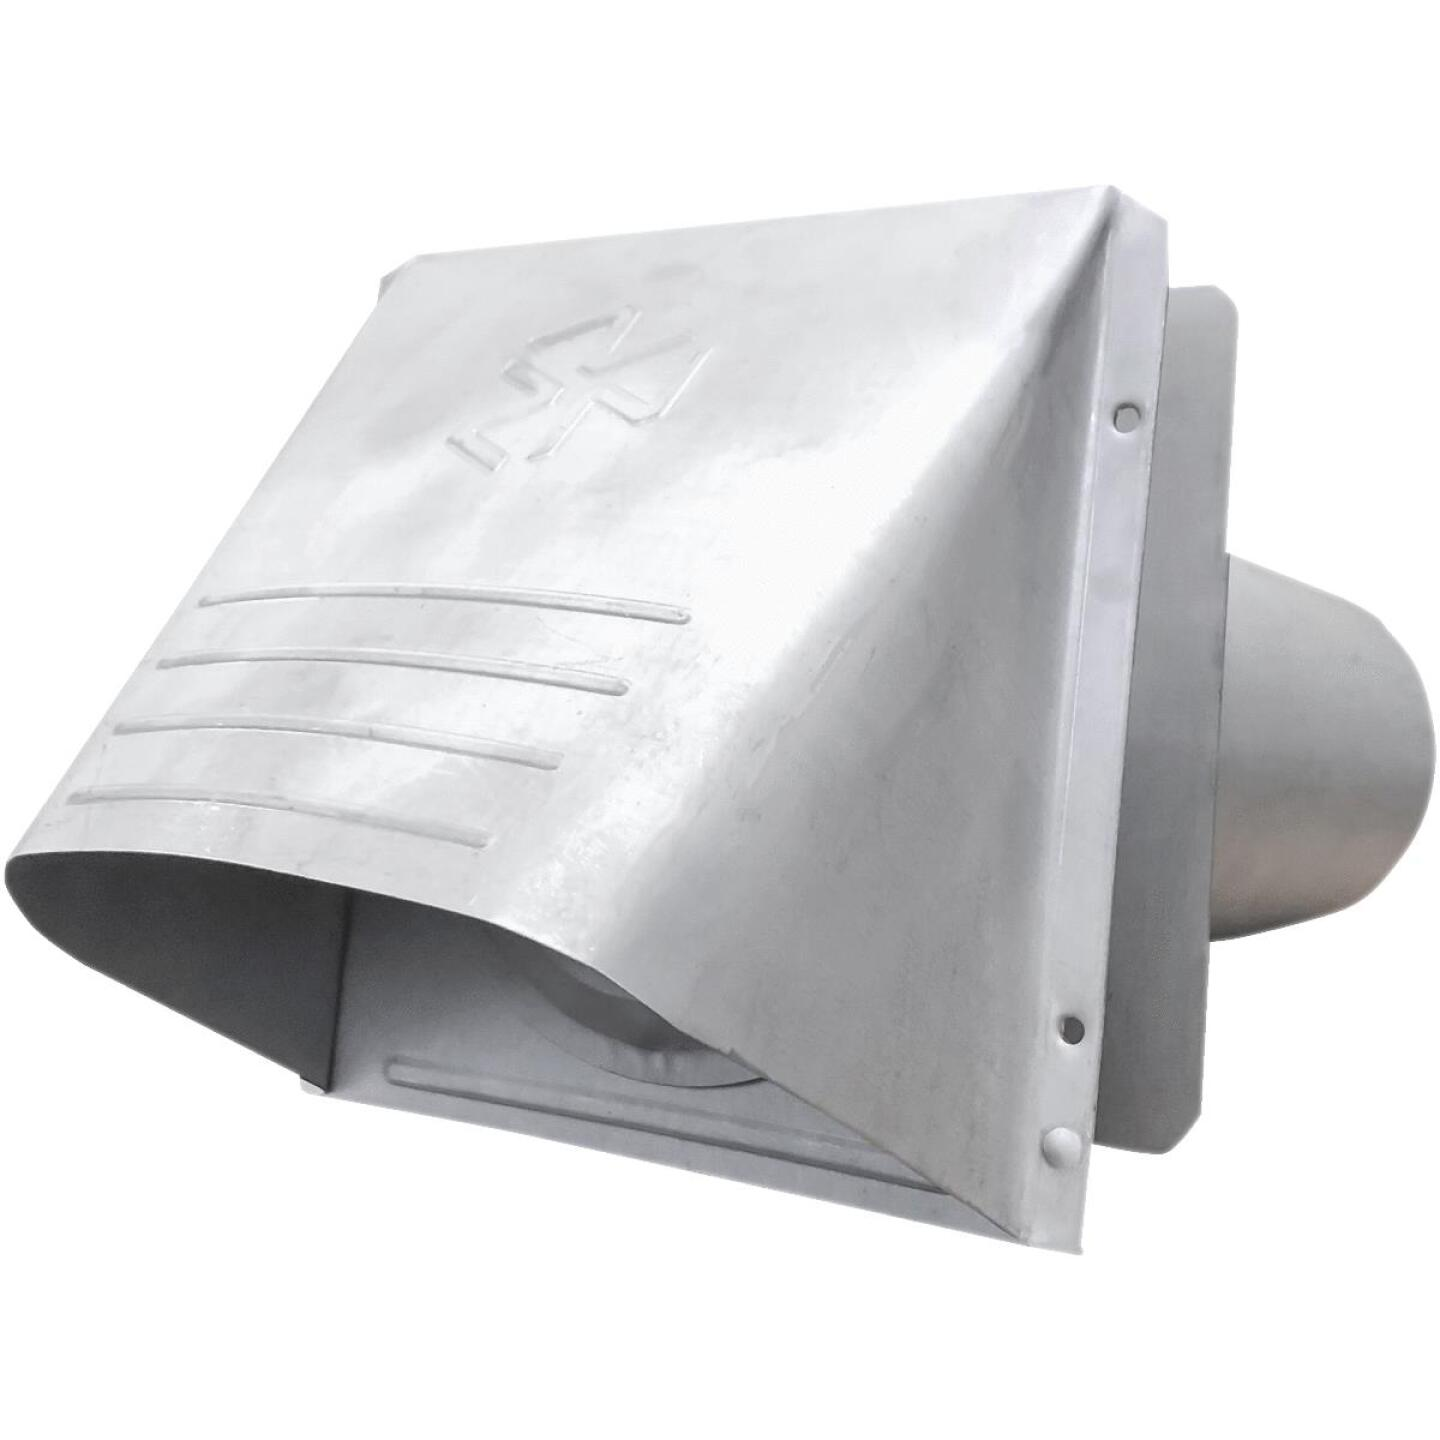 Builder's Best P-Tanium 4 In. Galvanized Wide Mouth Dryer Vent Hood Image 1